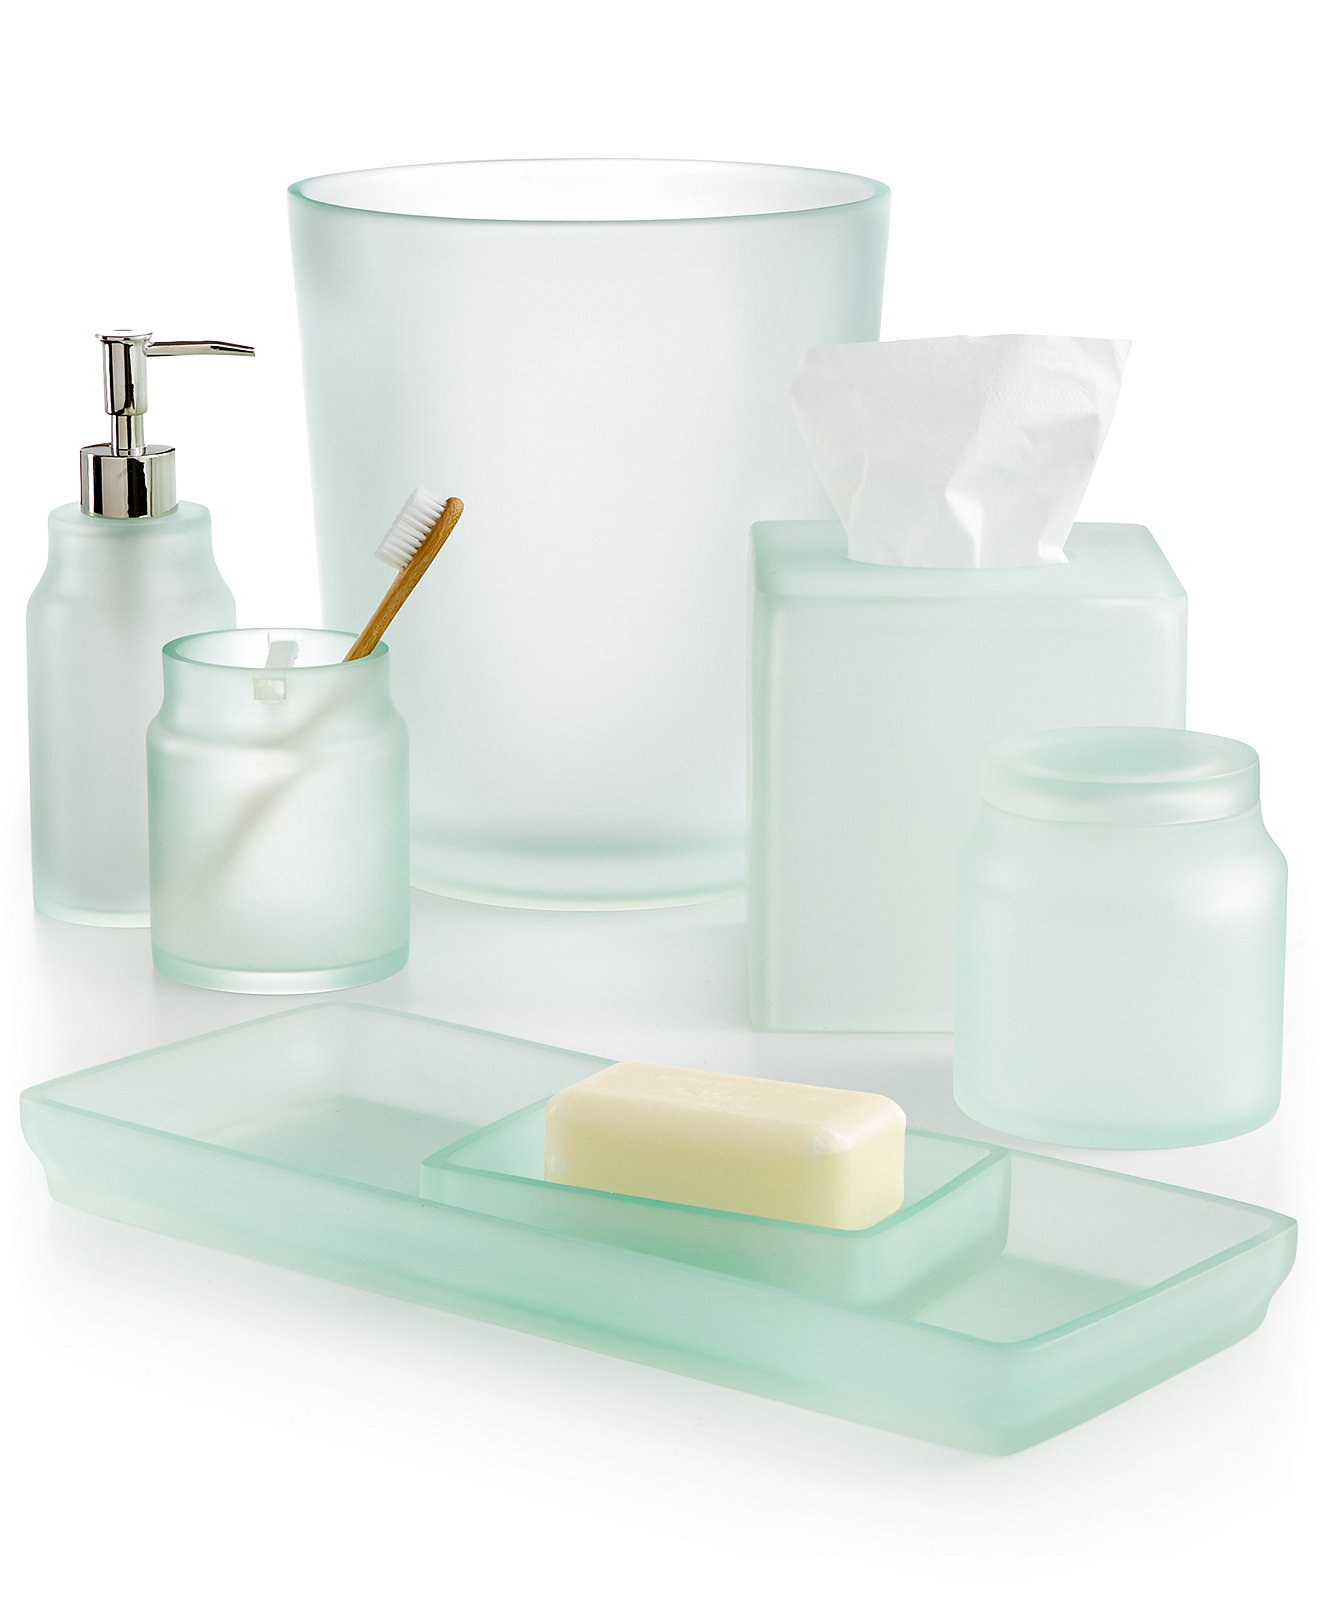 Dkny Bathroom Accessories Martha Stewart Collection Martha Stewart Collection Macys